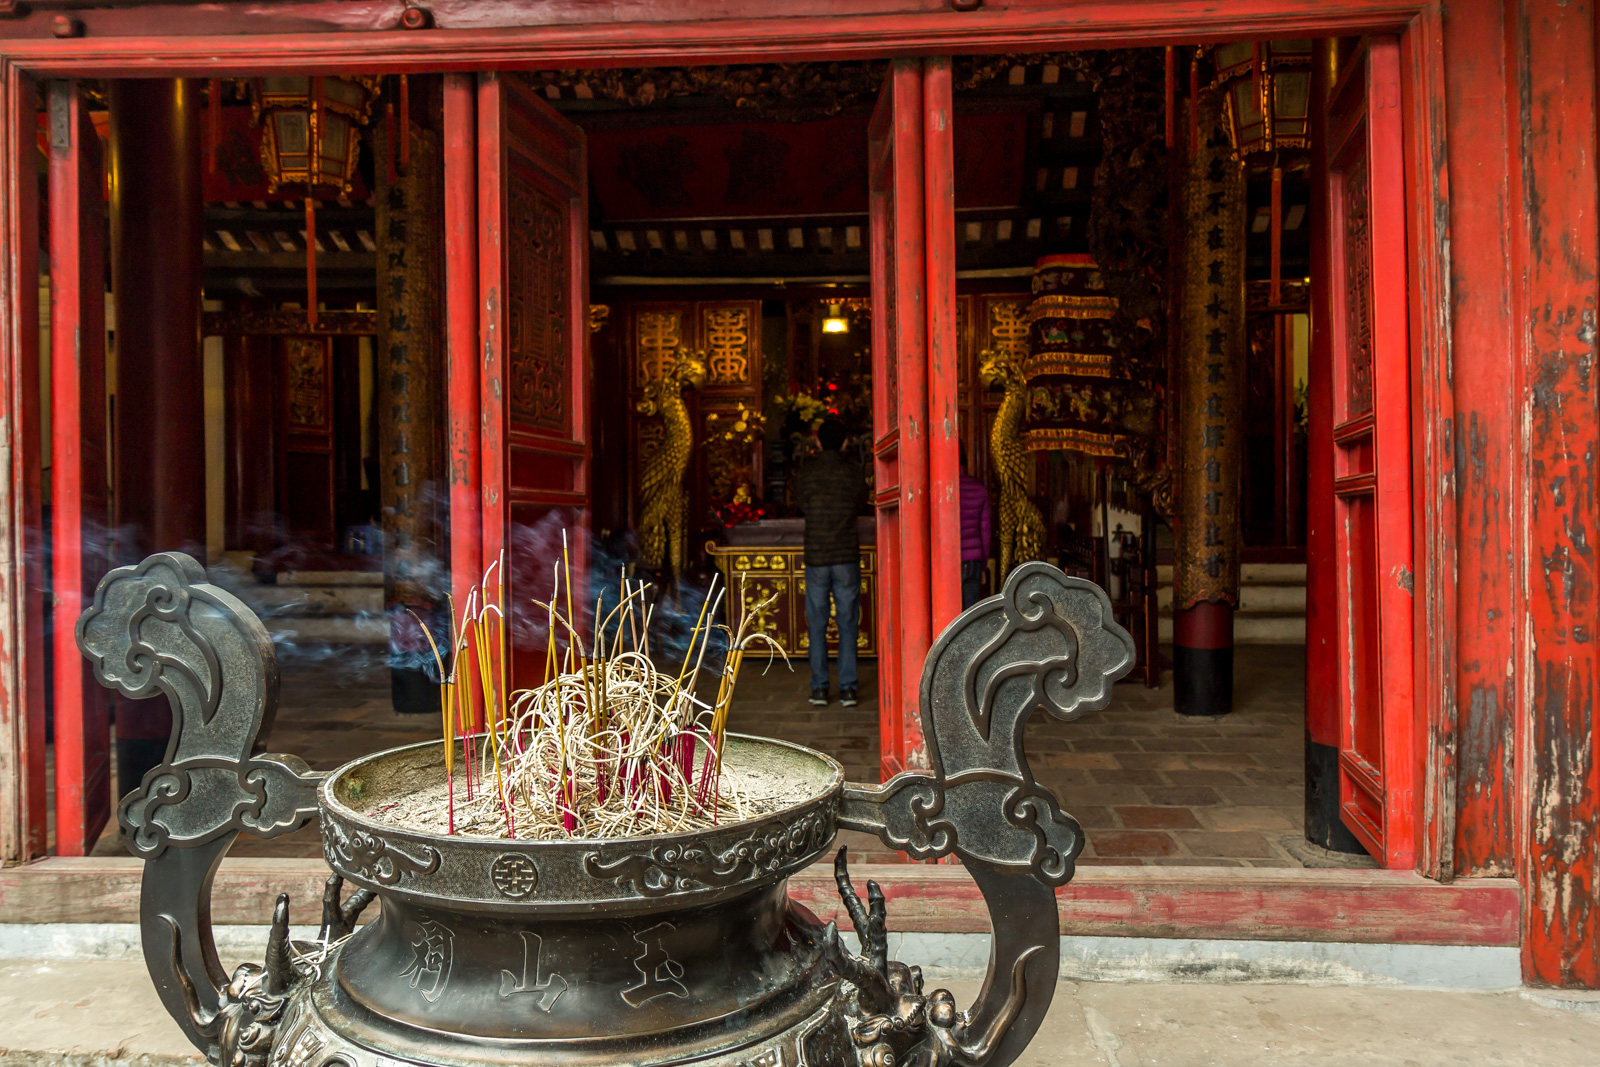 Offerings at the temple.